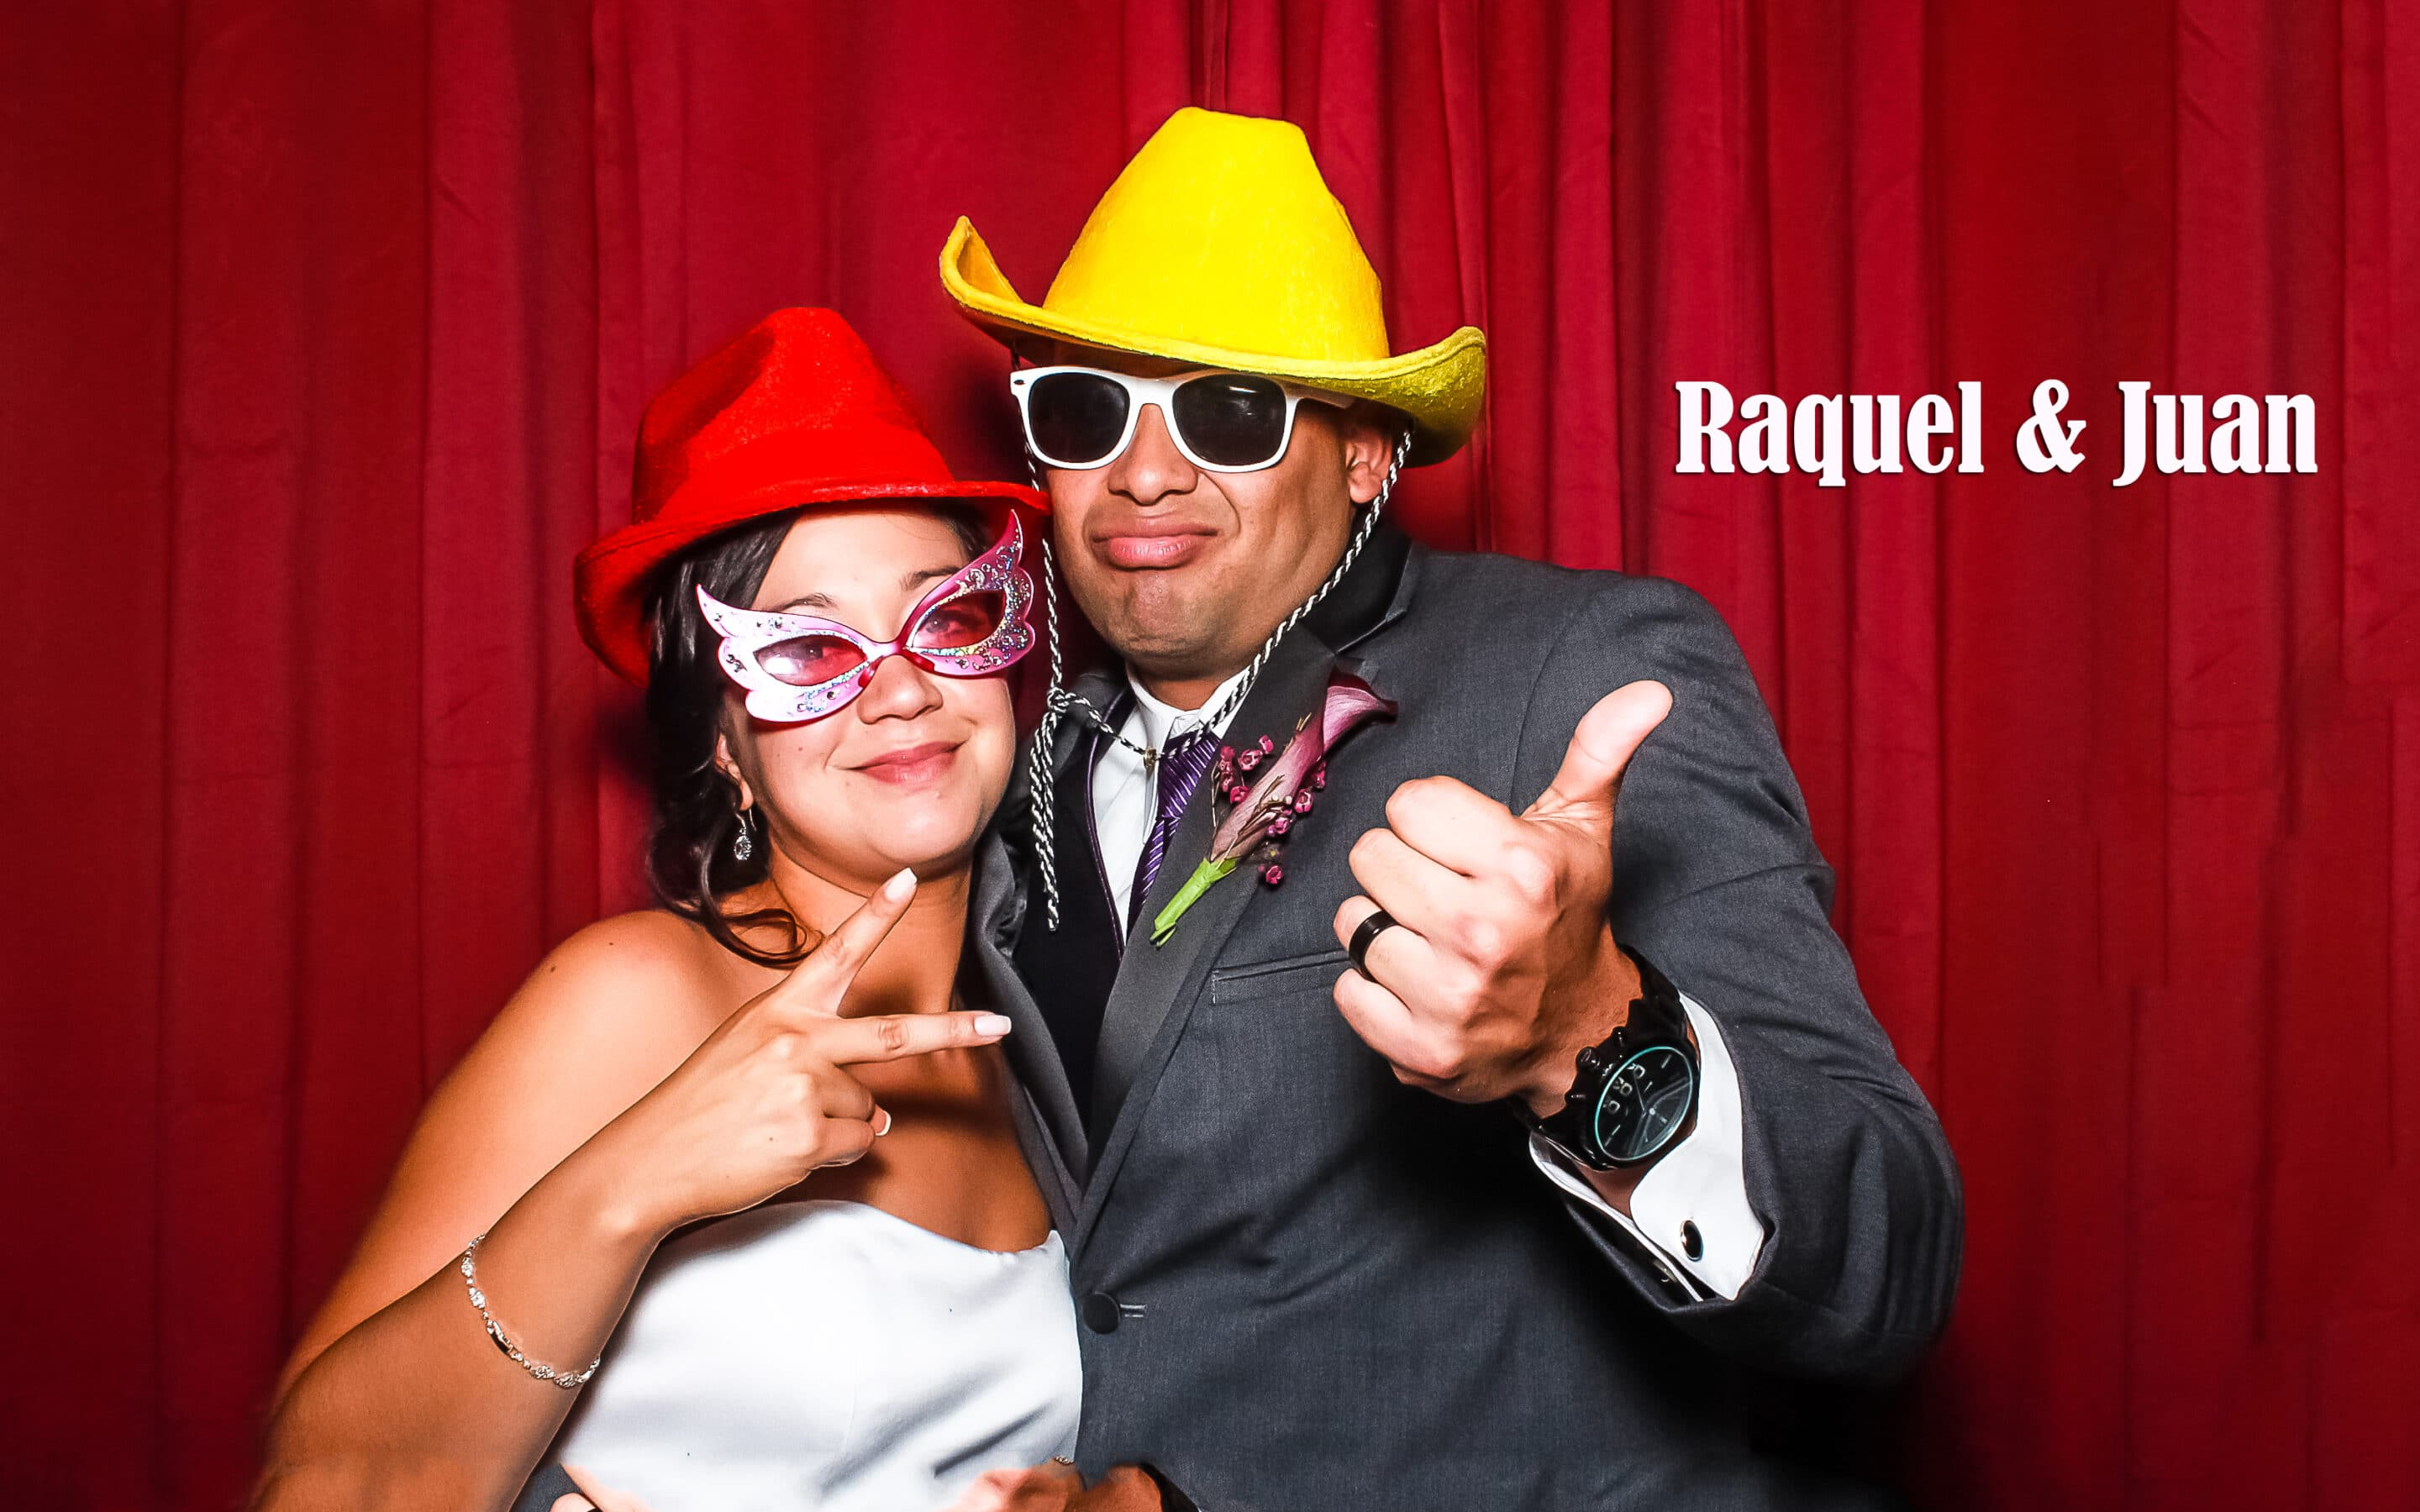 https://photoboothparty.net/wp-content/uploads/2013/03/RaquelandJuan_photobooth.jpg